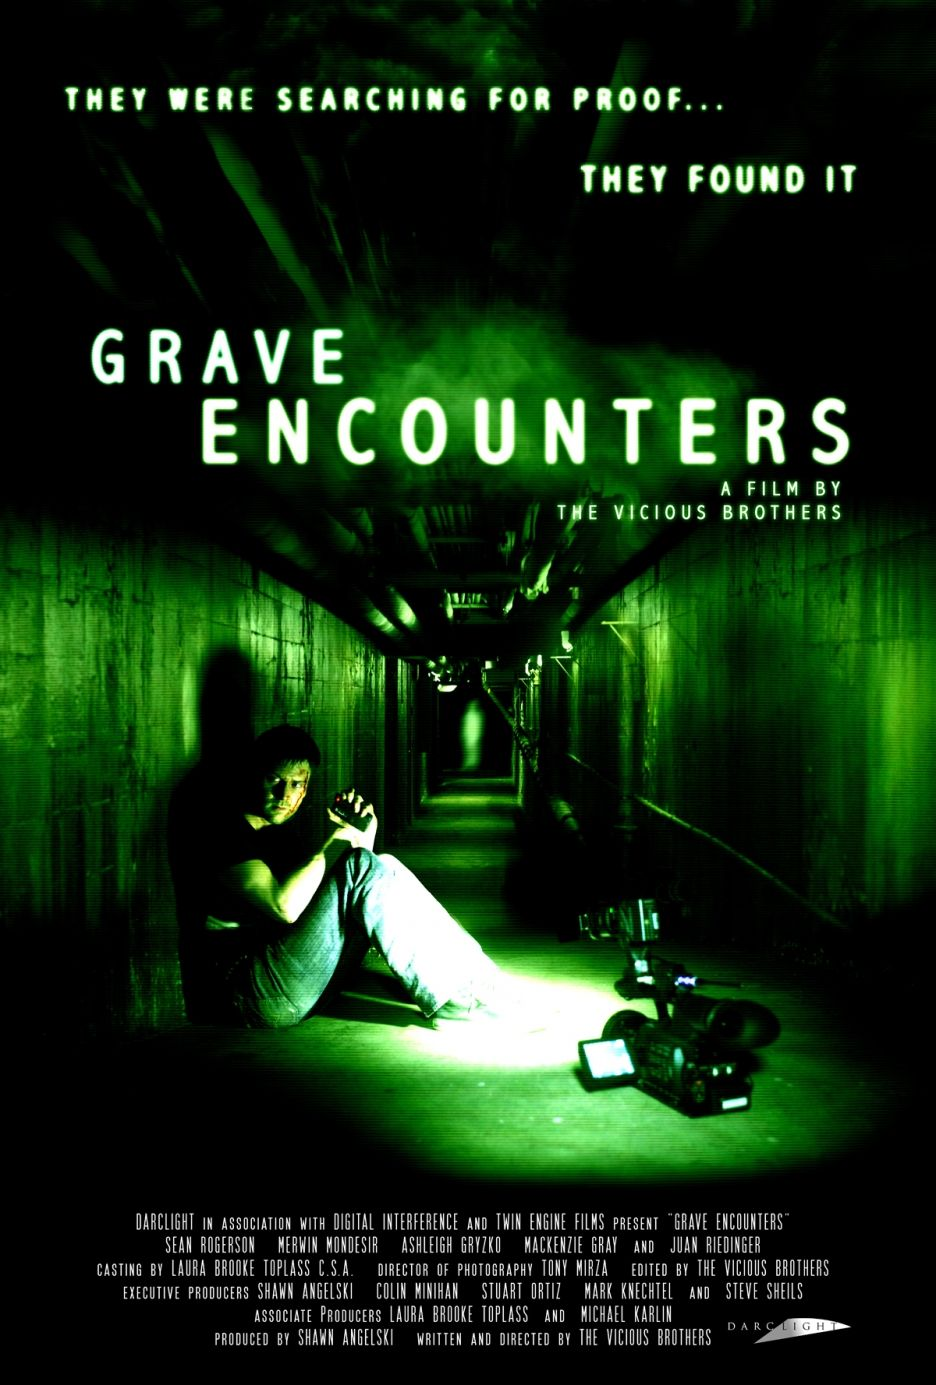 Grave Encounters 2011 Directed By The Vicious Brothers